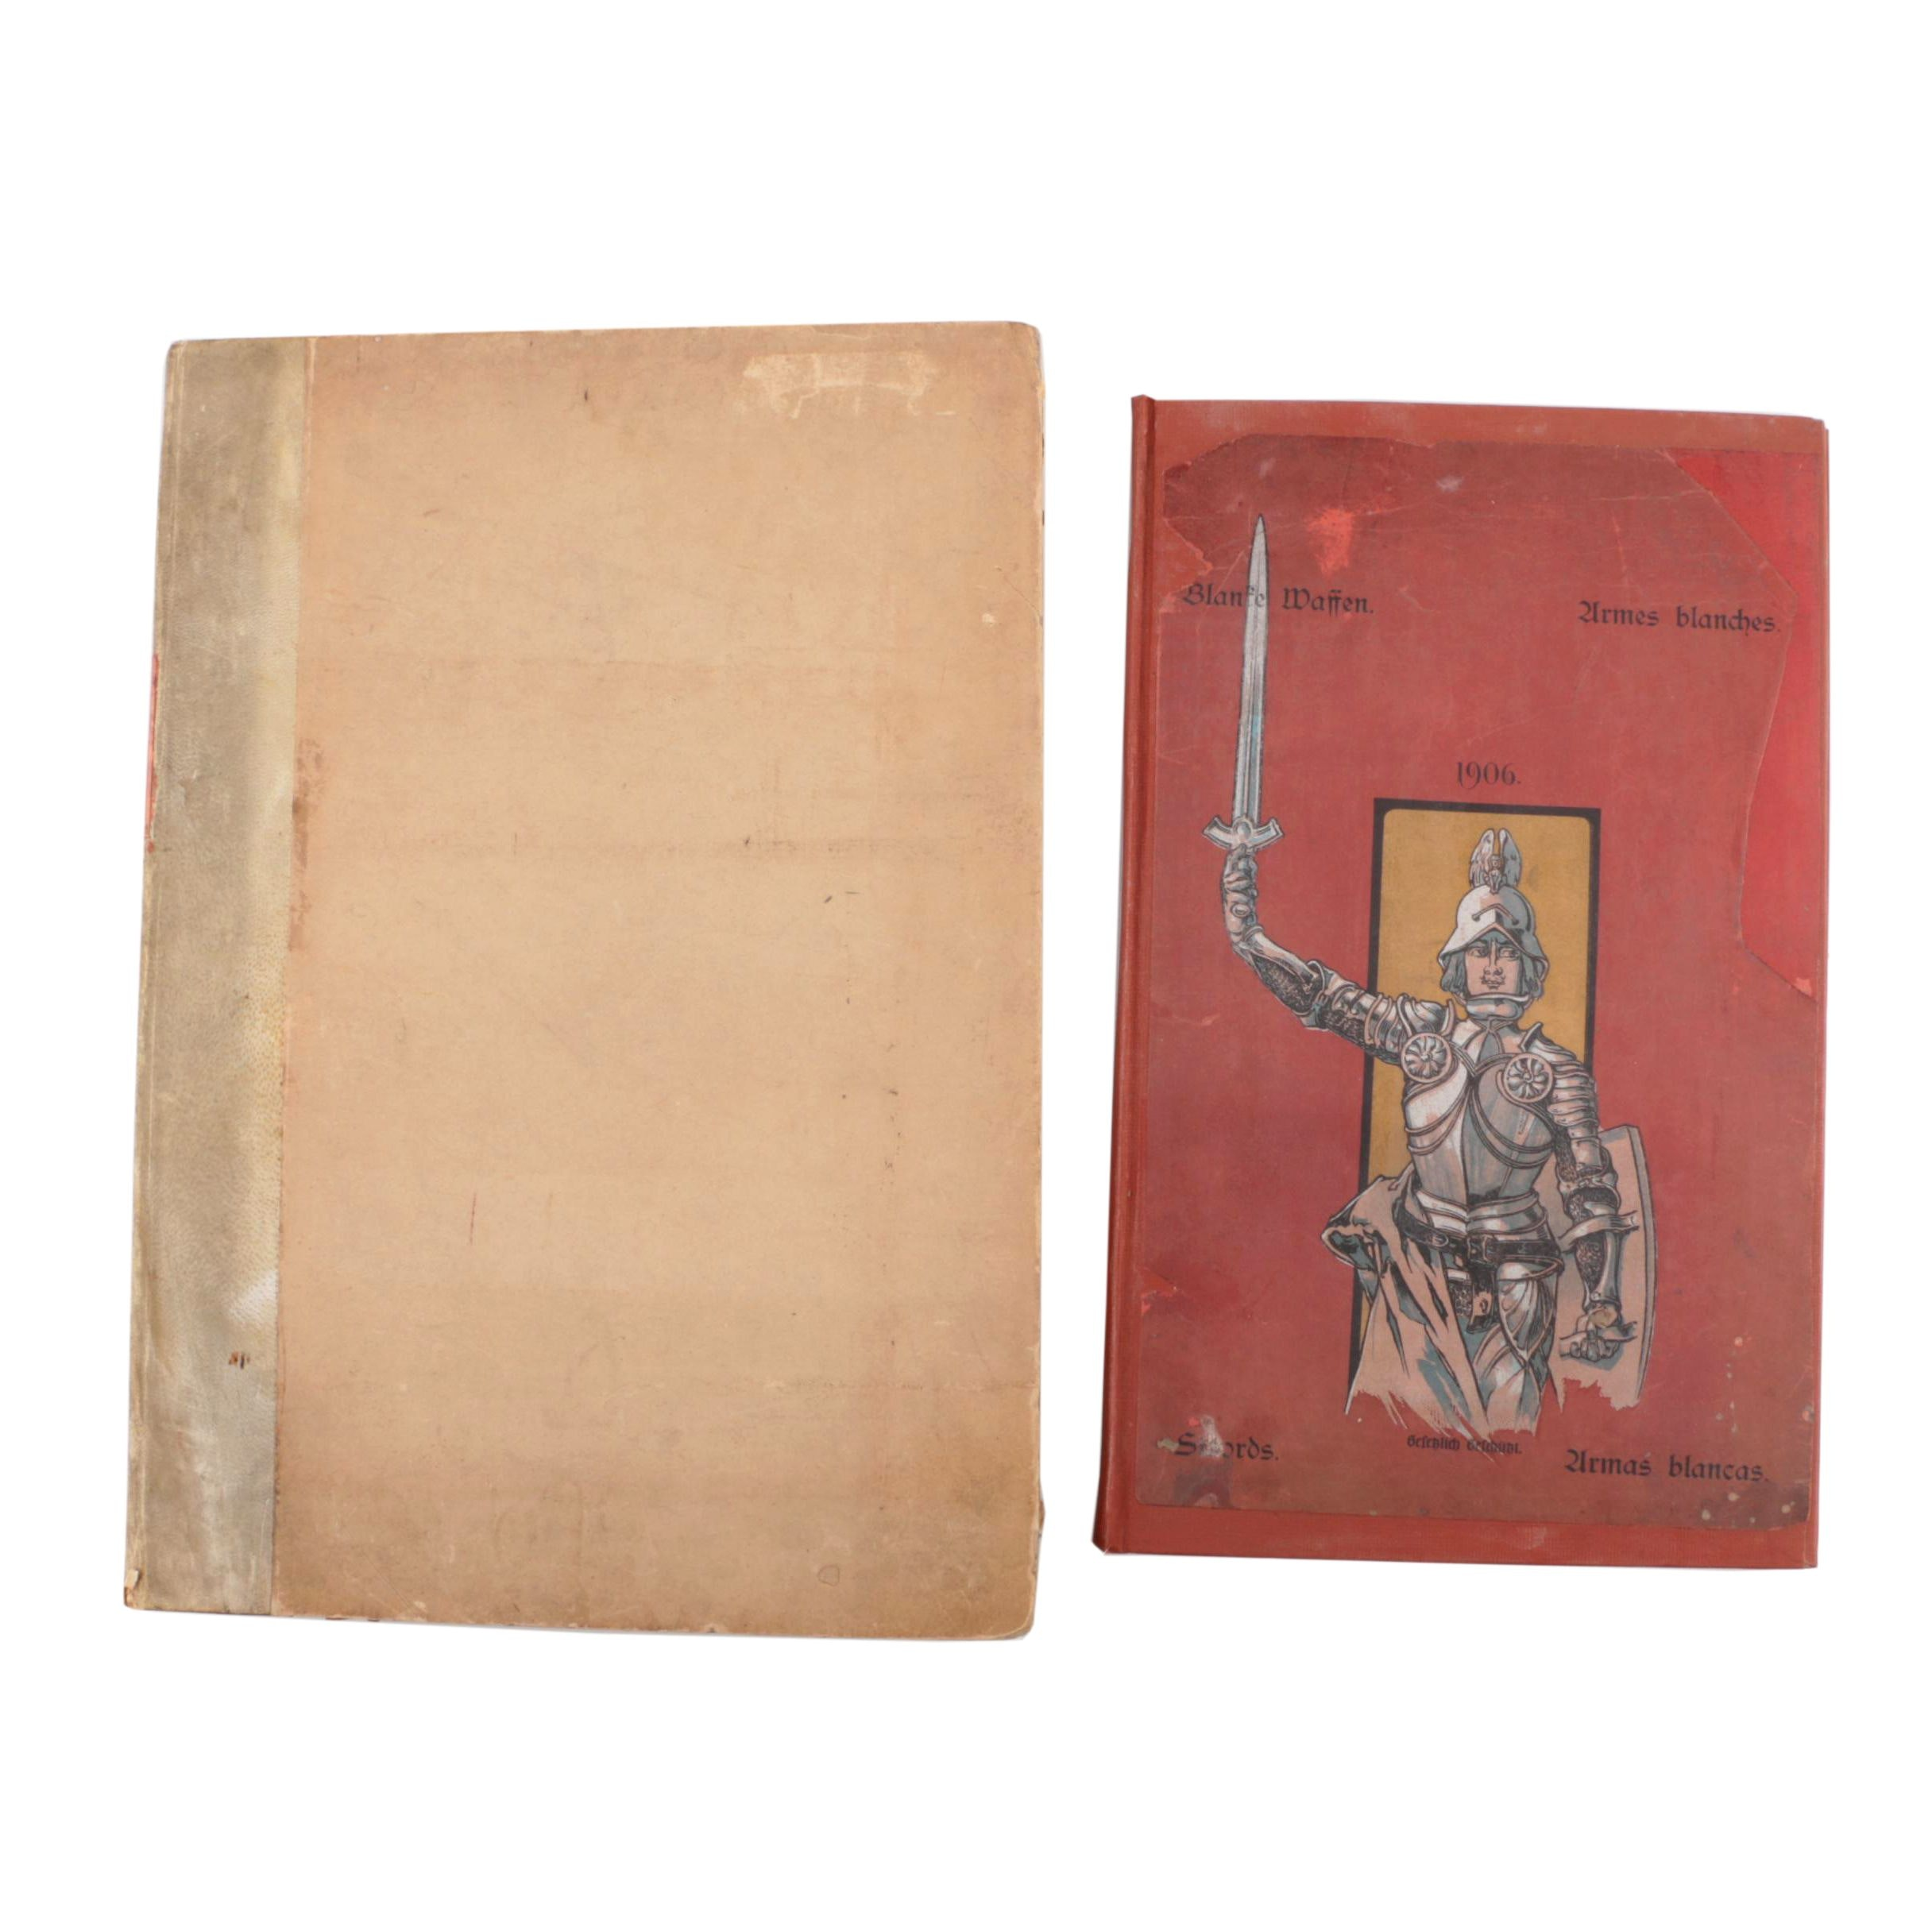 Antique Catalogs of Arms and Armor